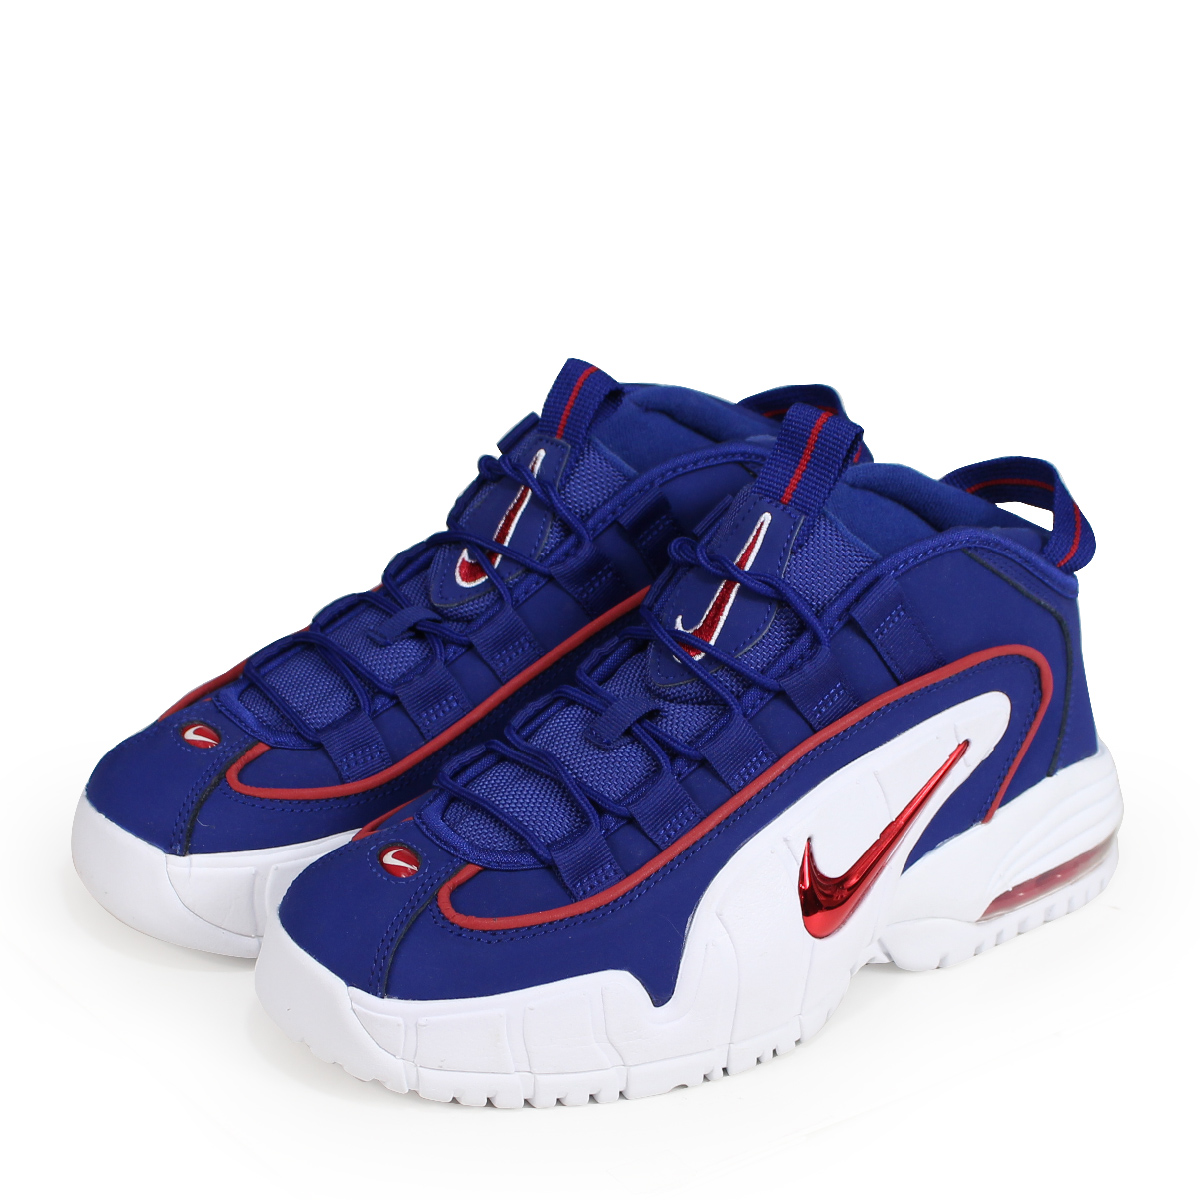 hot sales 54b1c 8d788 Nike NIKE Air Max penny Lady's sneakers AIR MAX PENNY LE GS 315,519-400  blue [197]